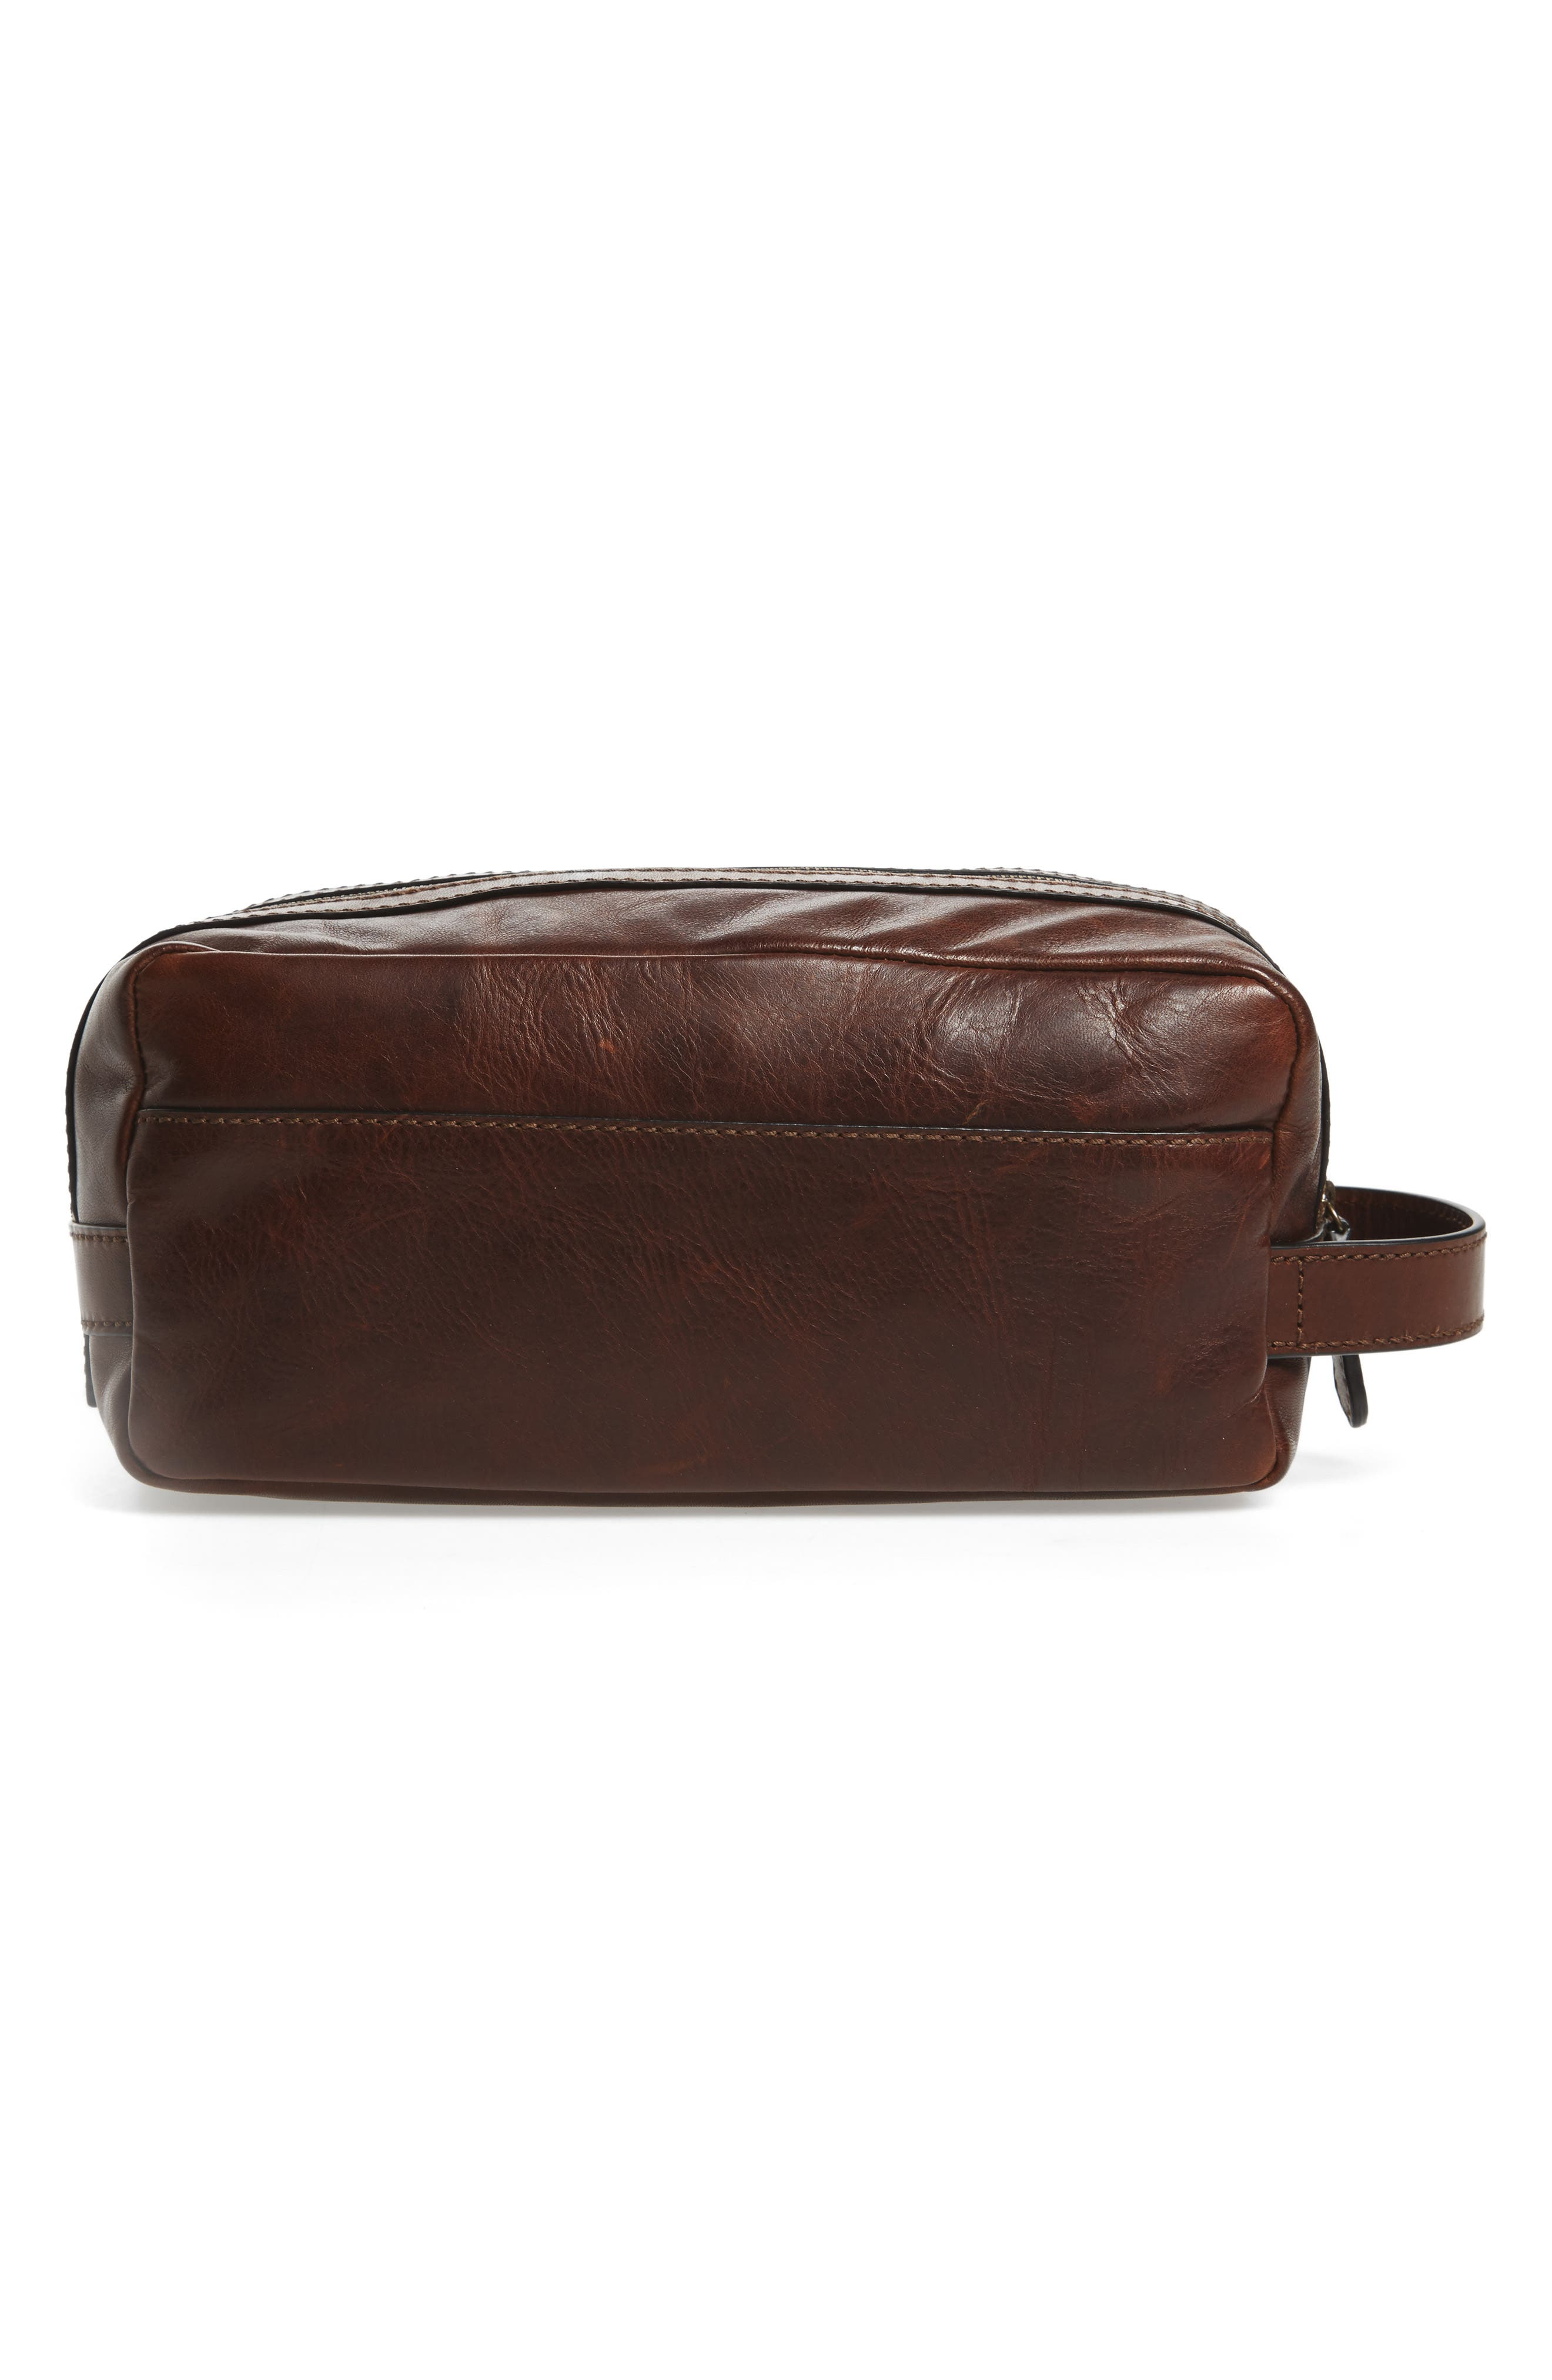 'Logan' Leather Travel Kit,                             Alternate thumbnail 3, color,                             Dark Brown